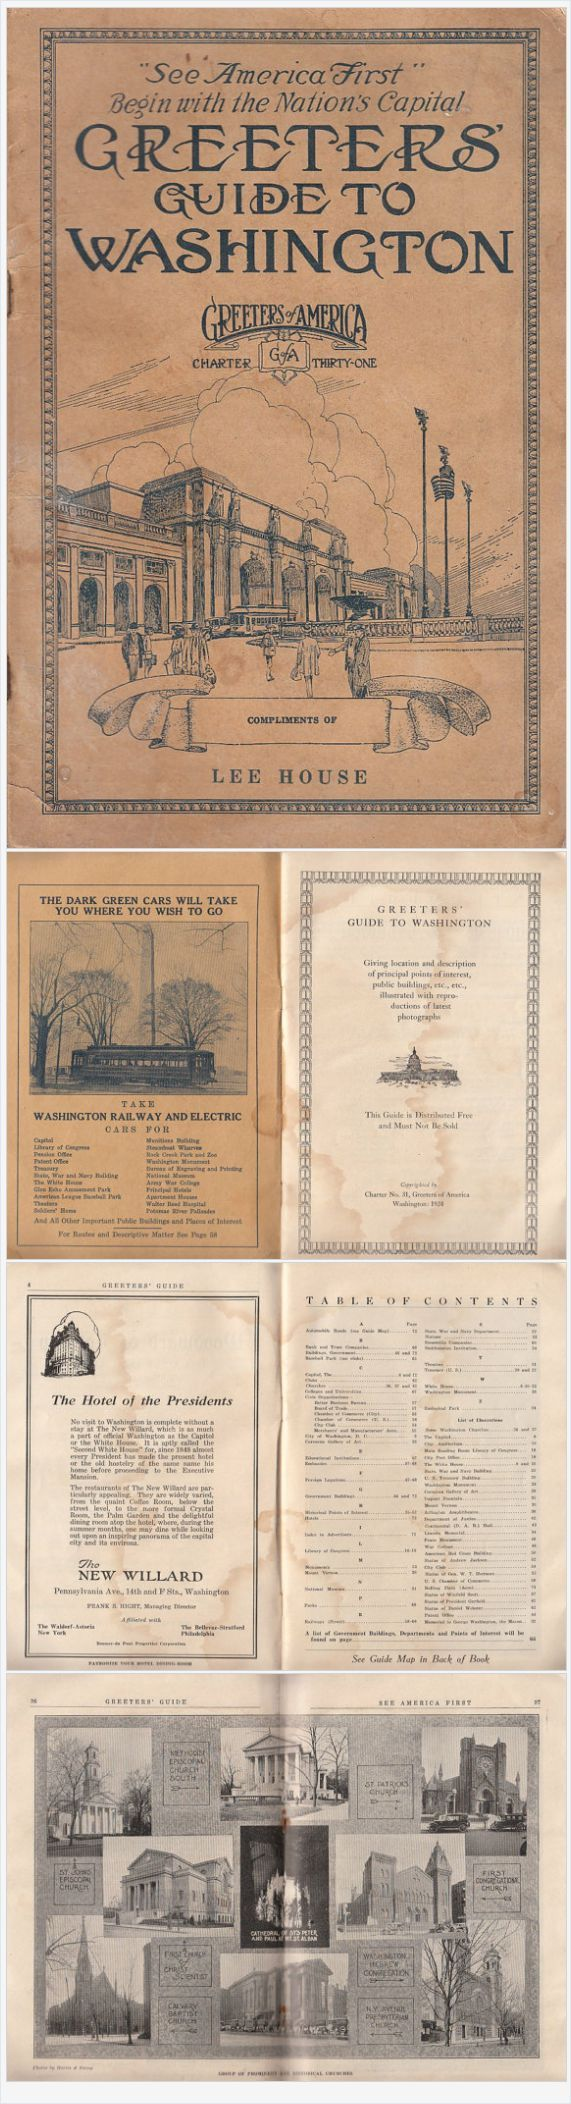 Vintage Greeters Guide to Washington DC with Pull-Out Map 1924 Local Ads Illustrated